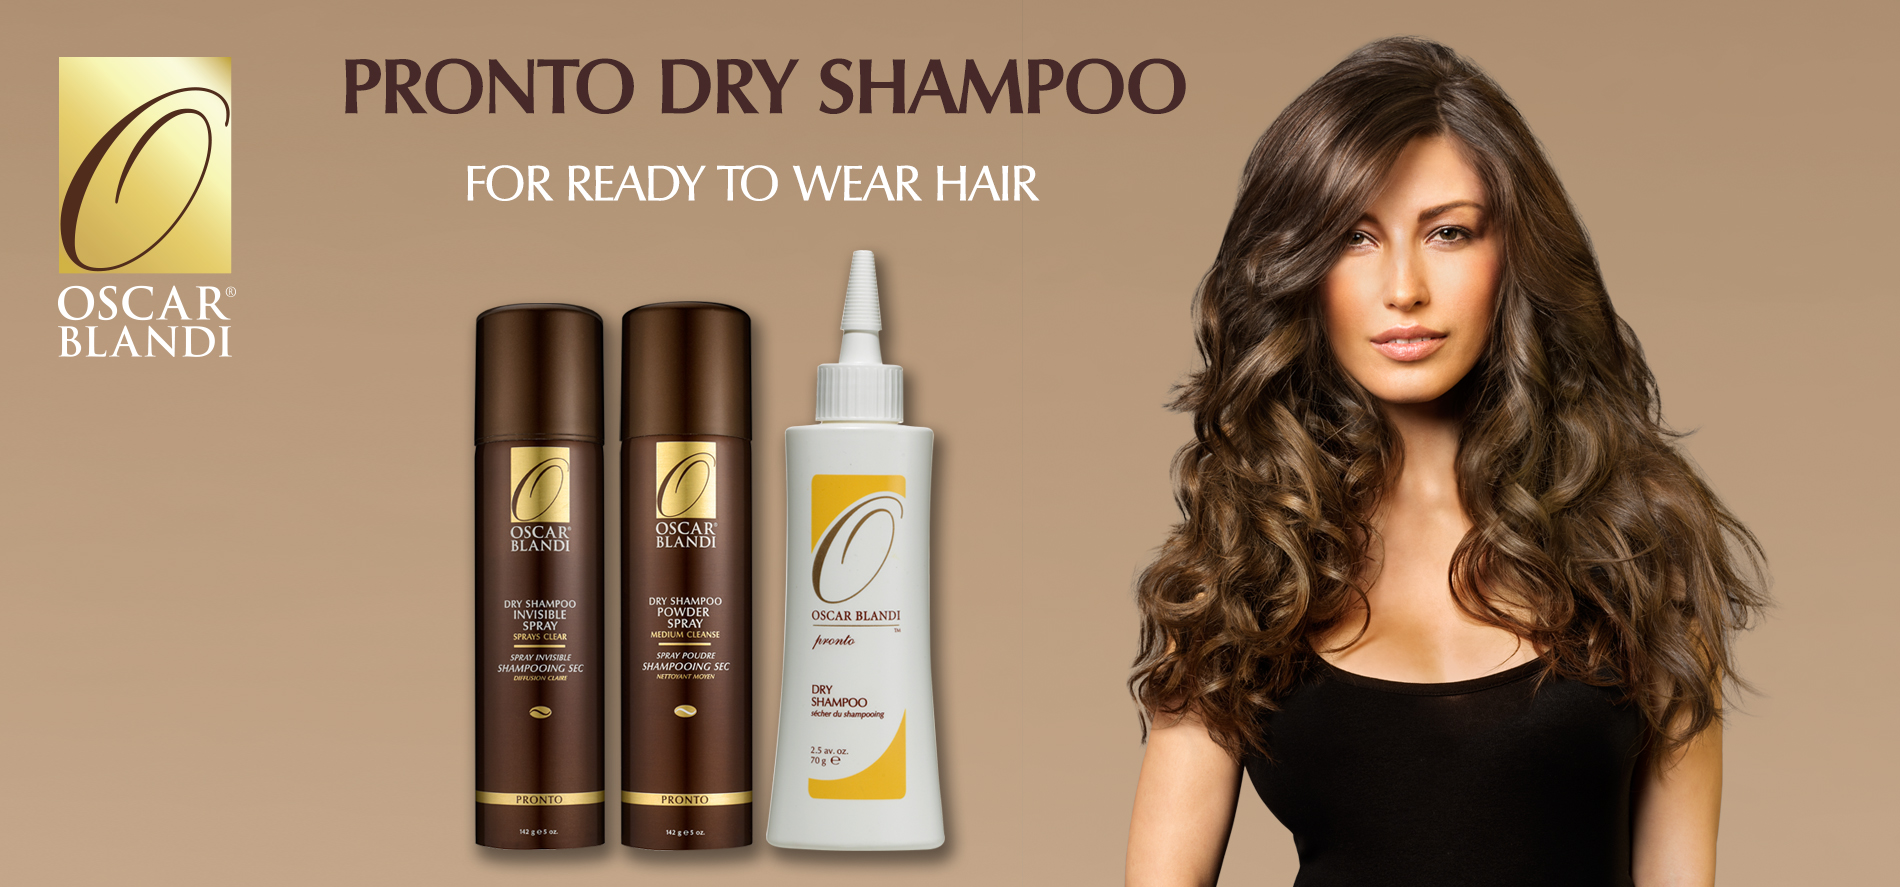 Oscar Blandi Hair Care